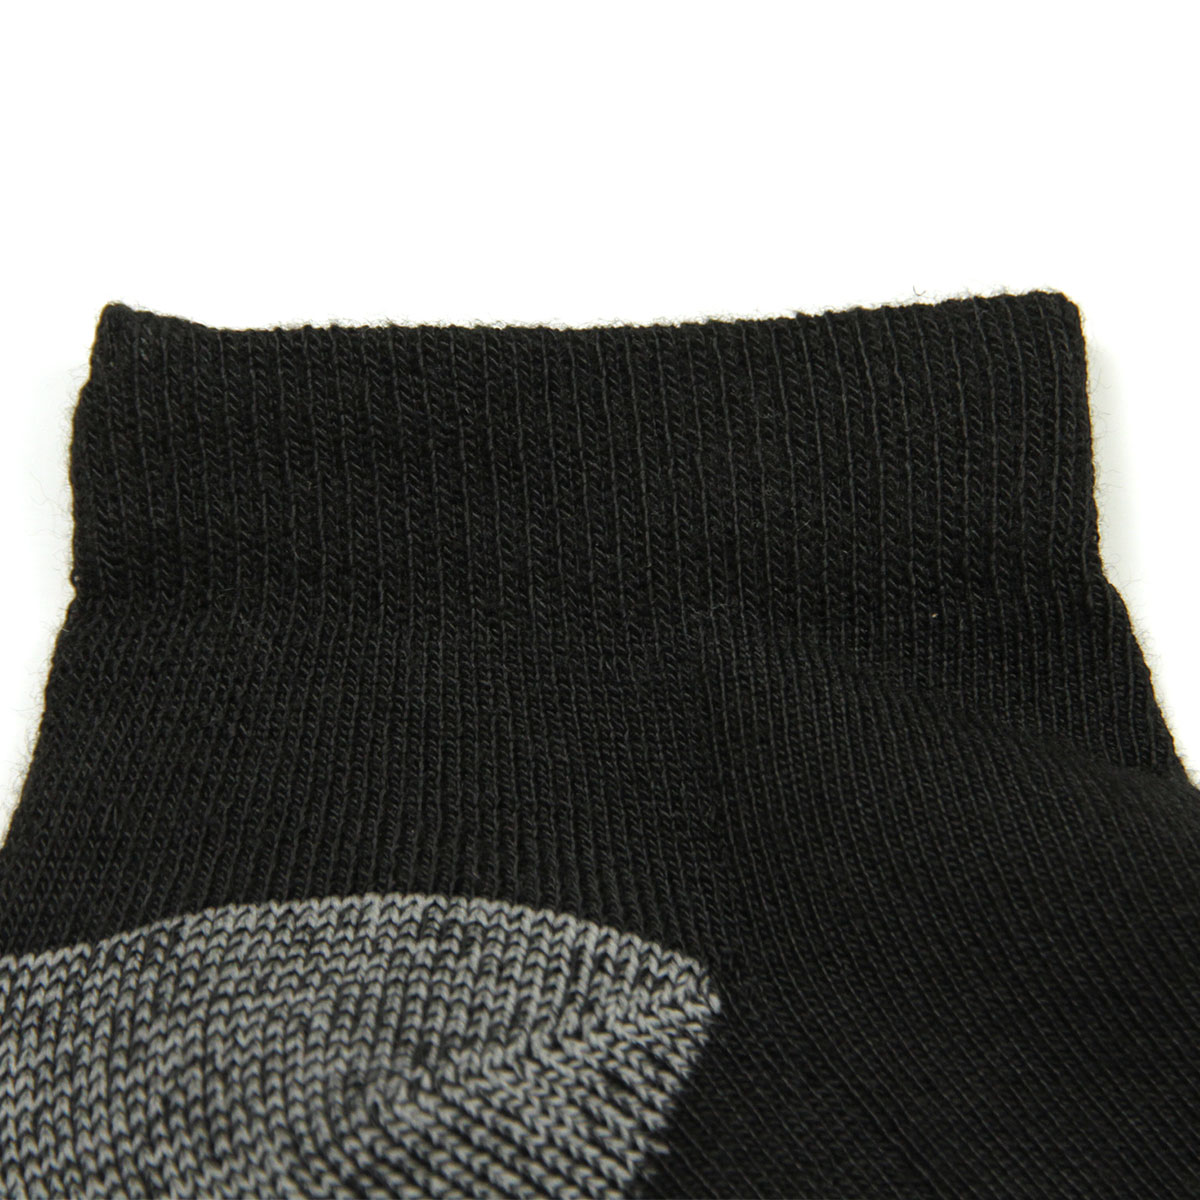 フルーツオブザルーム FRUIT OF THE LOOM 正規品 靴下 MEN'S 10PK LOW CUT SOCKS M2700BXZUS Size.6-12 BLACK